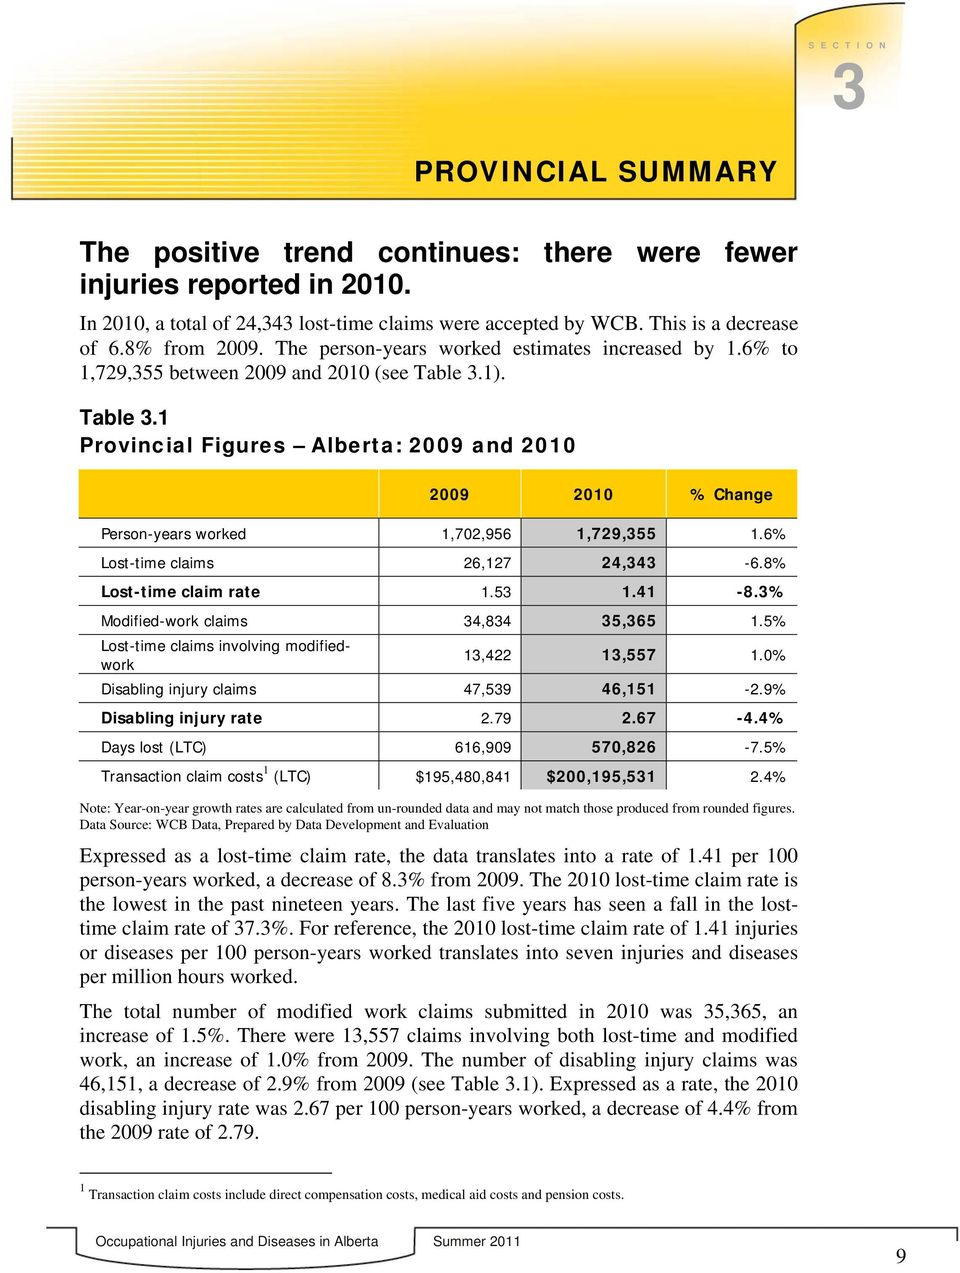 1). Table 3.1 Provincial Figures Alberta: 2009 and 2010 2009 2010 % Change Person-years worked 1,702,956 1,729,355 1.6% Lost-time claims 26,127 24,343-6.8% Lost-time claim rate 1.53 1.41-8.